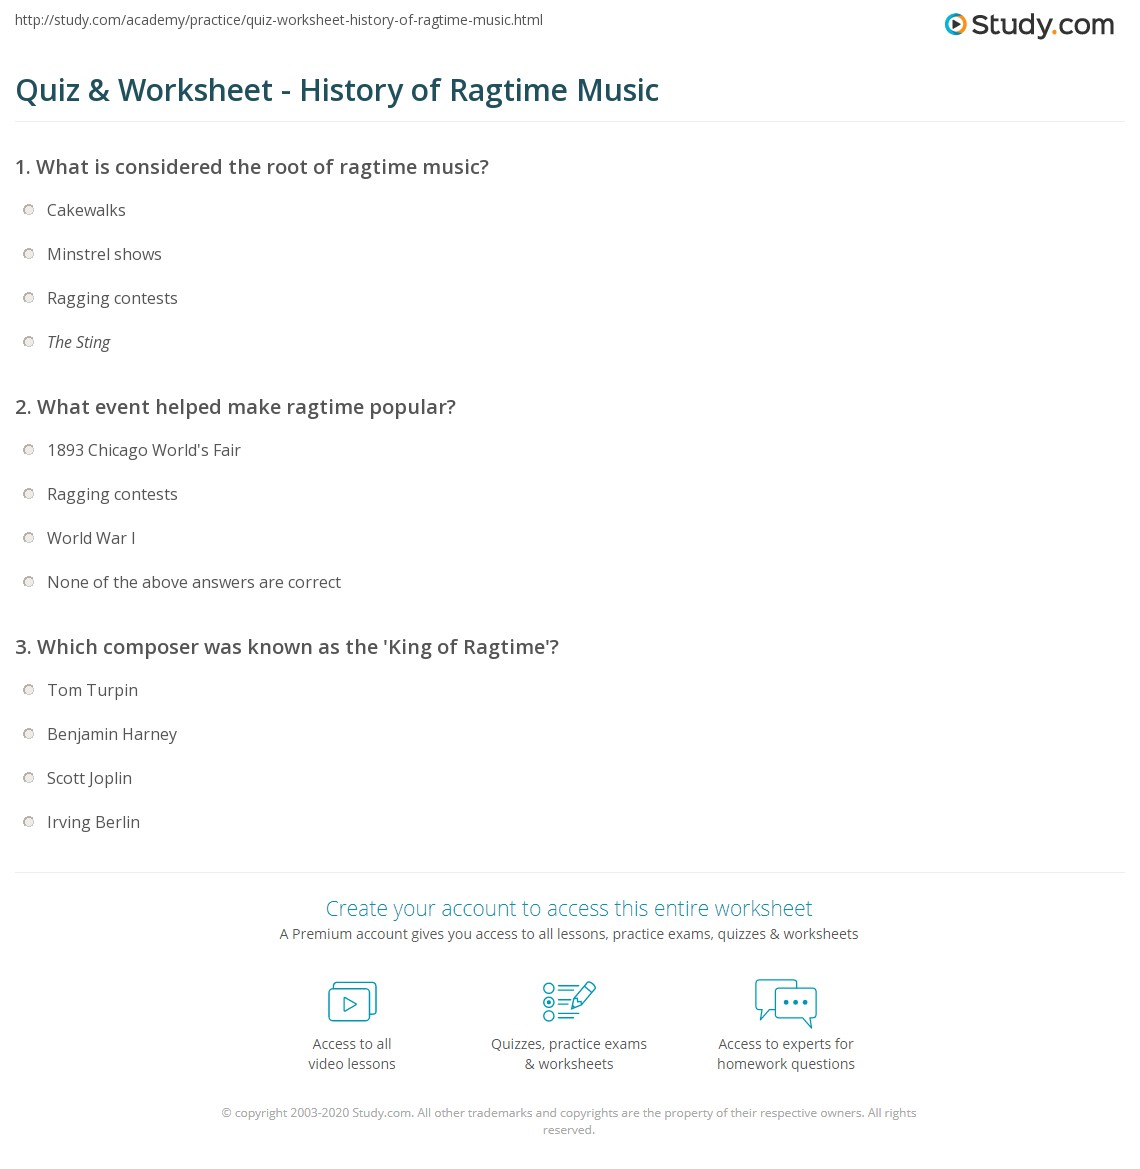 Quiz & Worksheet - History of Ragtime Music | Study.com